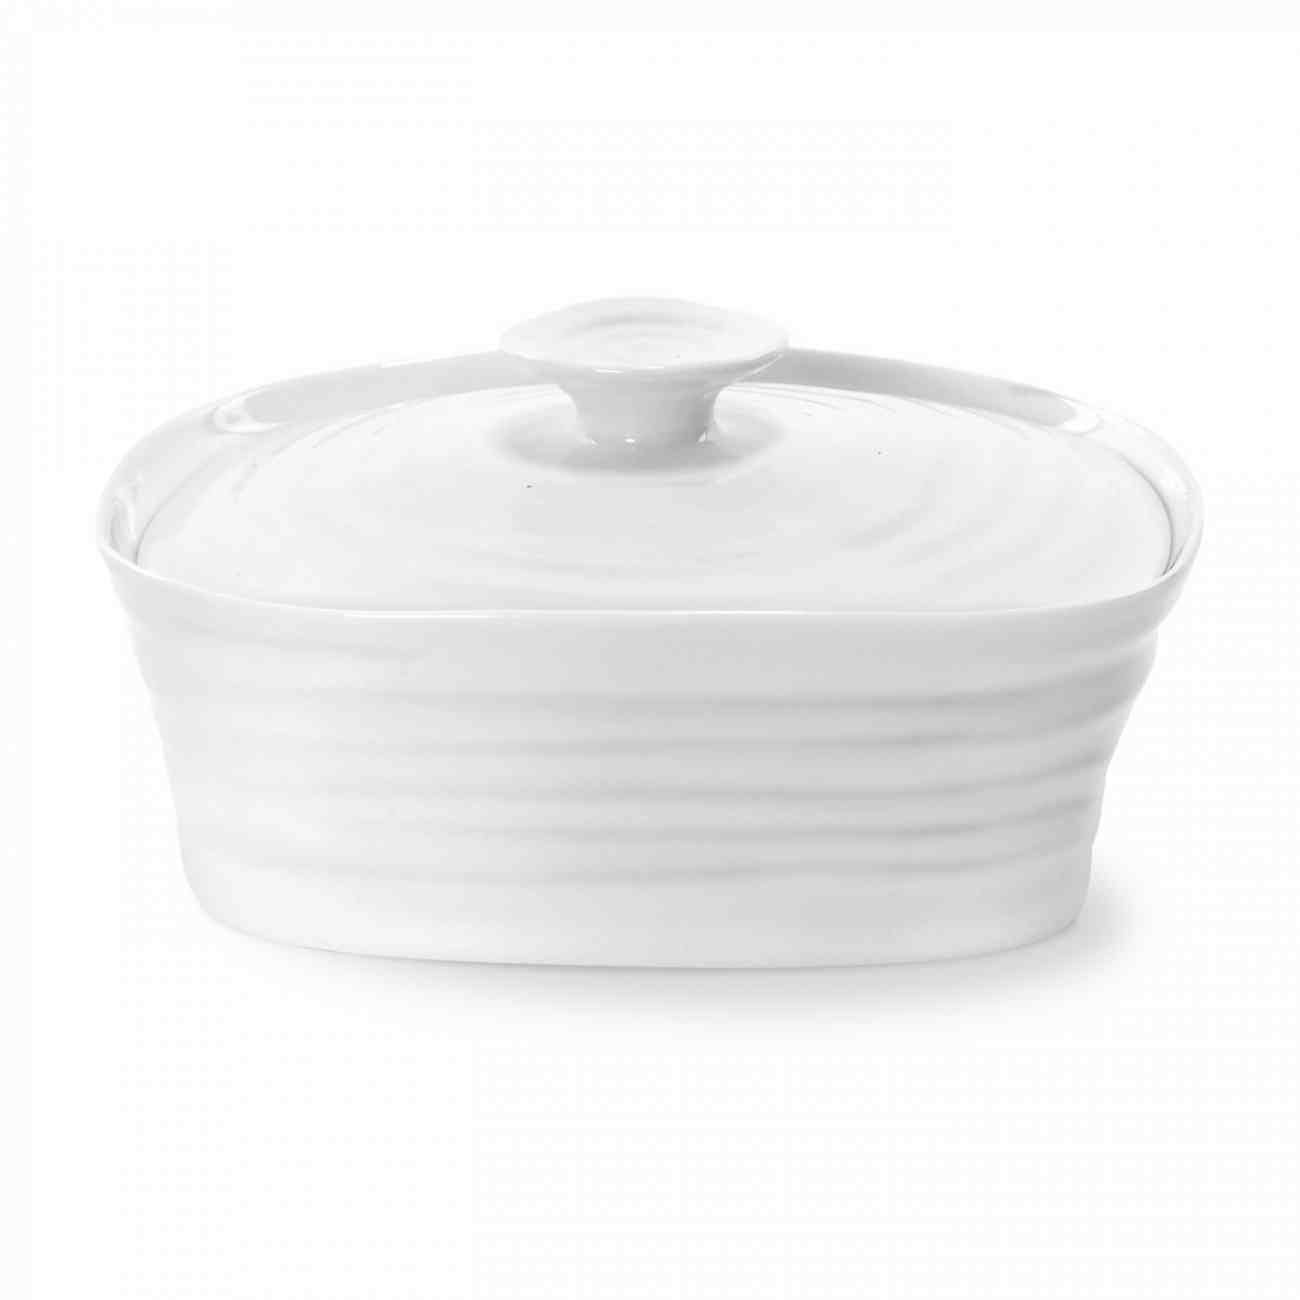 """SOPHIE CONRAN COVERED BUTTER 15.5 x 12cm/6"""" x 4.75"""" CPW76824-X"""